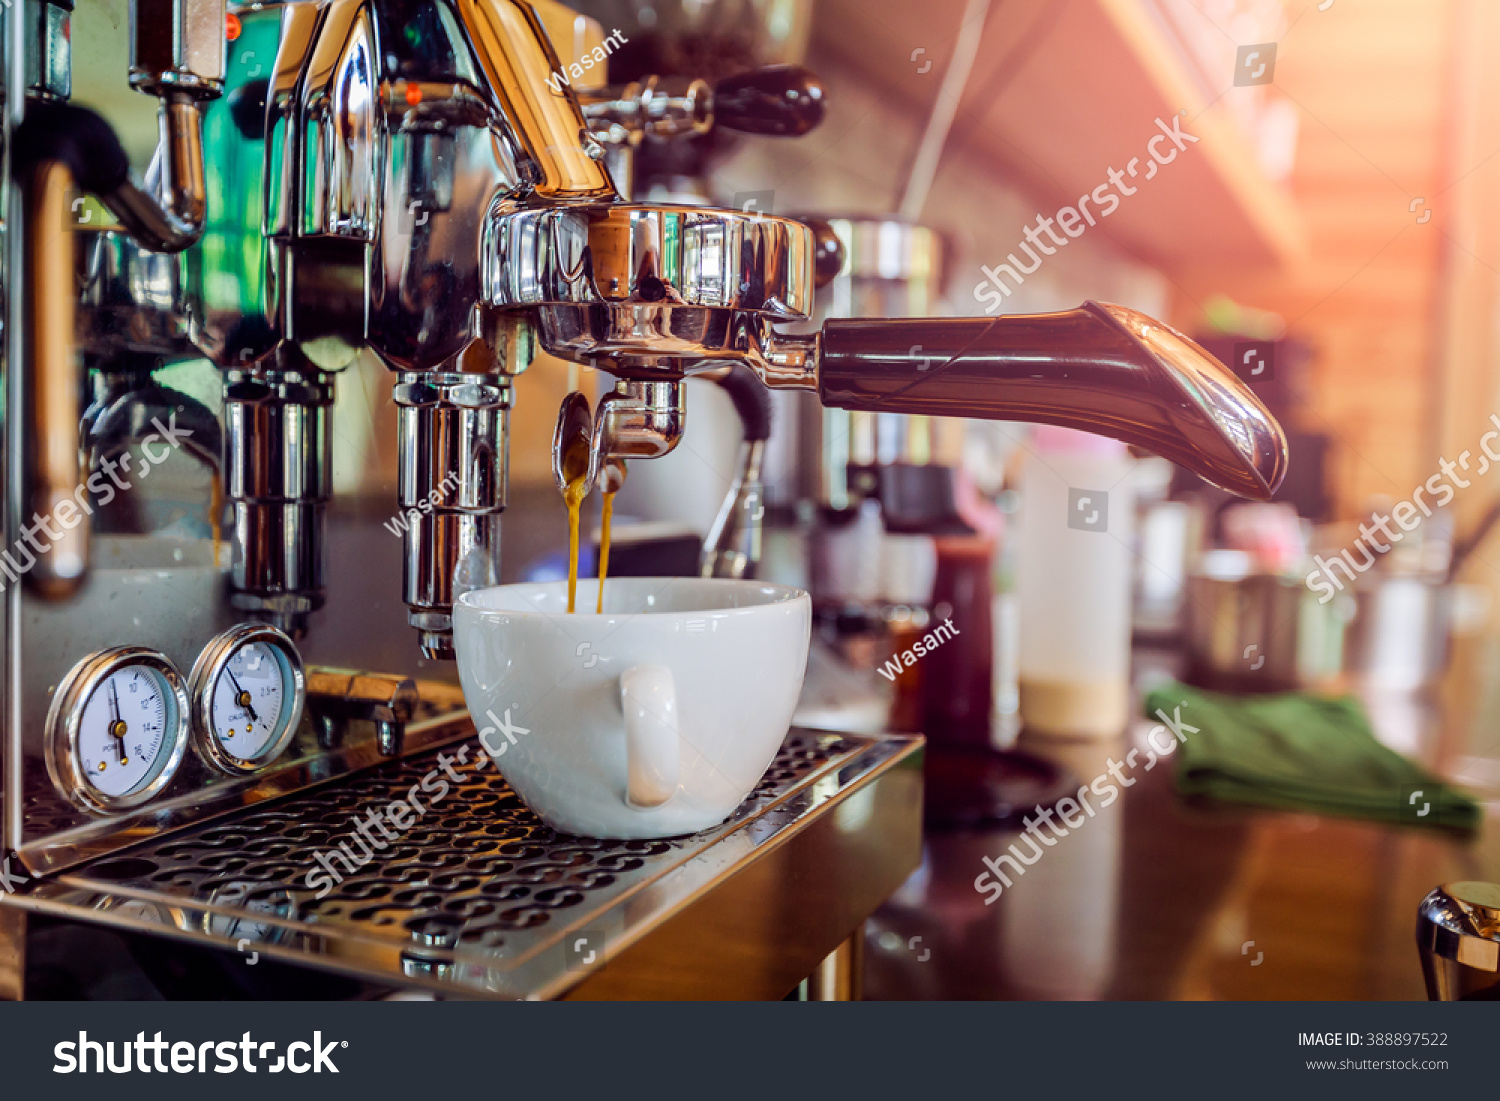 professional coffee machine making espresso cafe stock photo 388897522 shutterstock. Black Bedroom Furniture Sets. Home Design Ideas